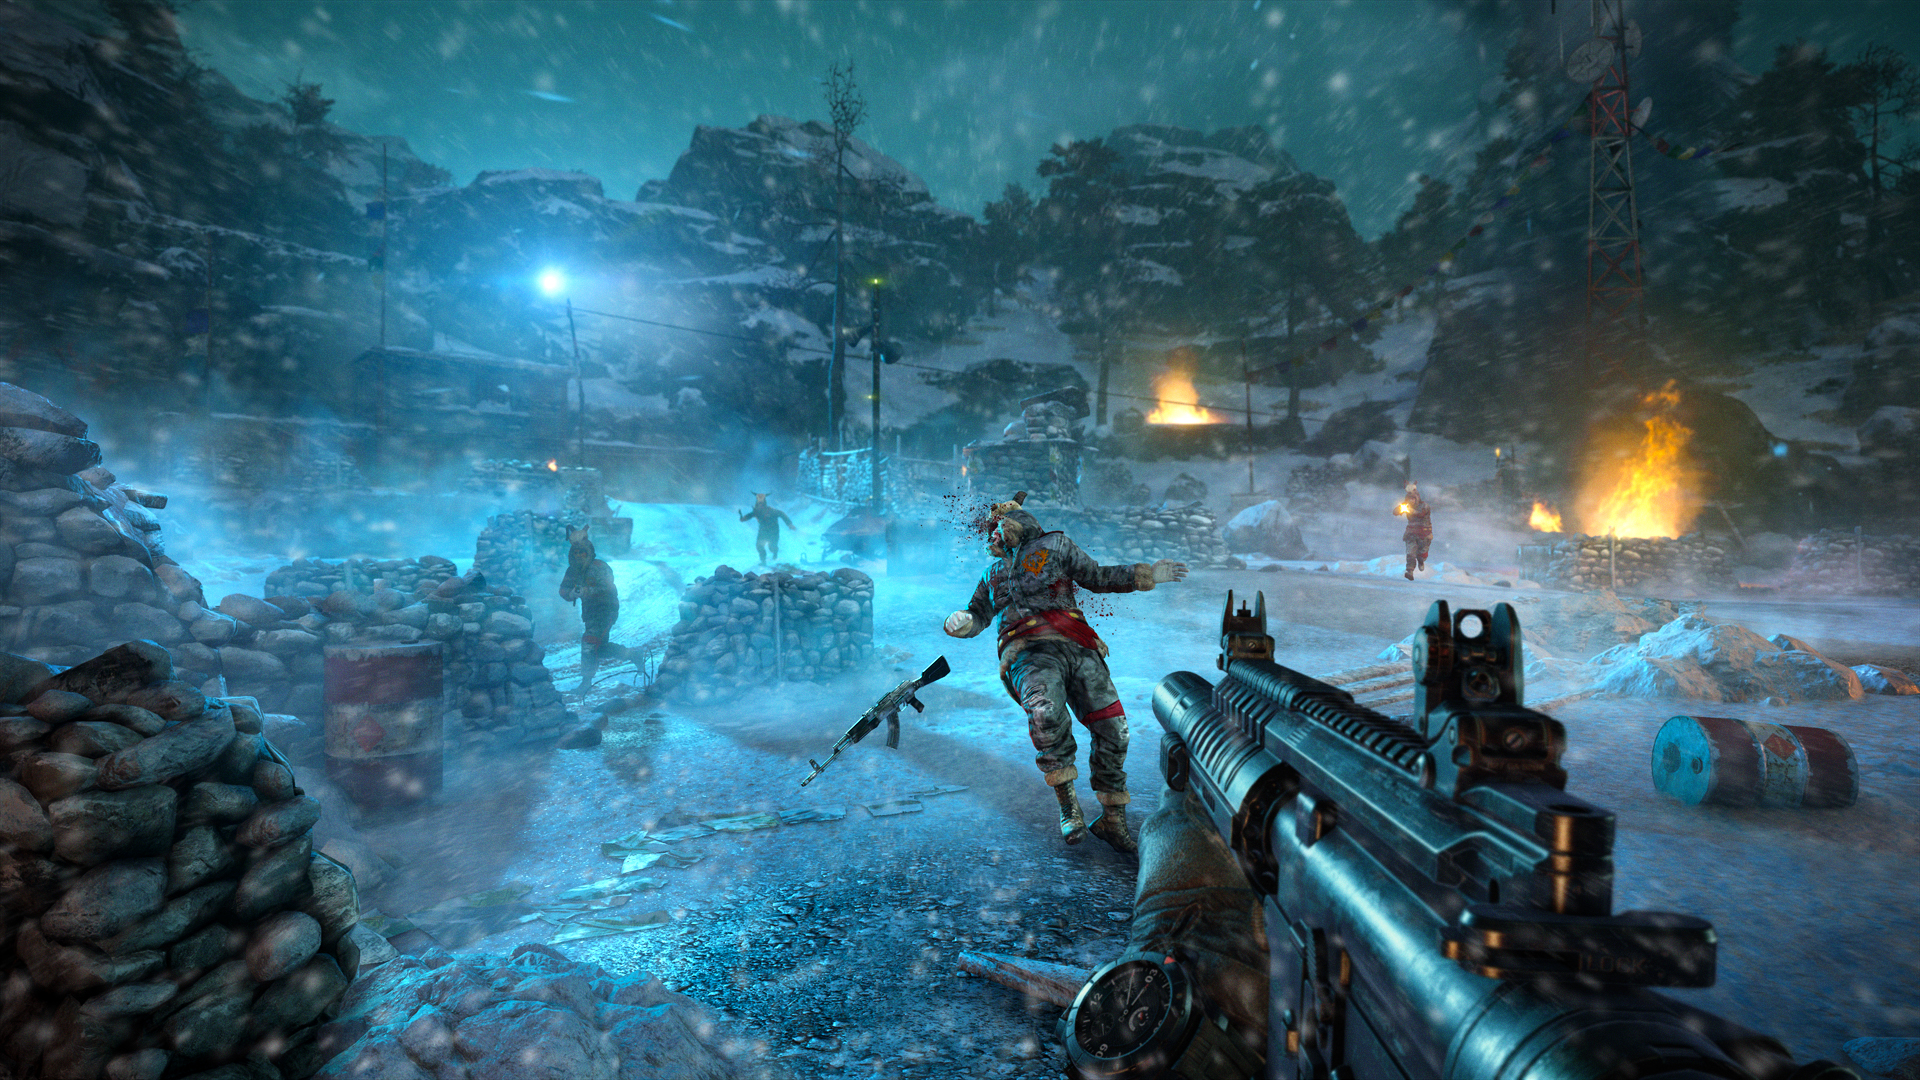 Download Far Cry 4 Valley Of The Yetis Full Pc Game